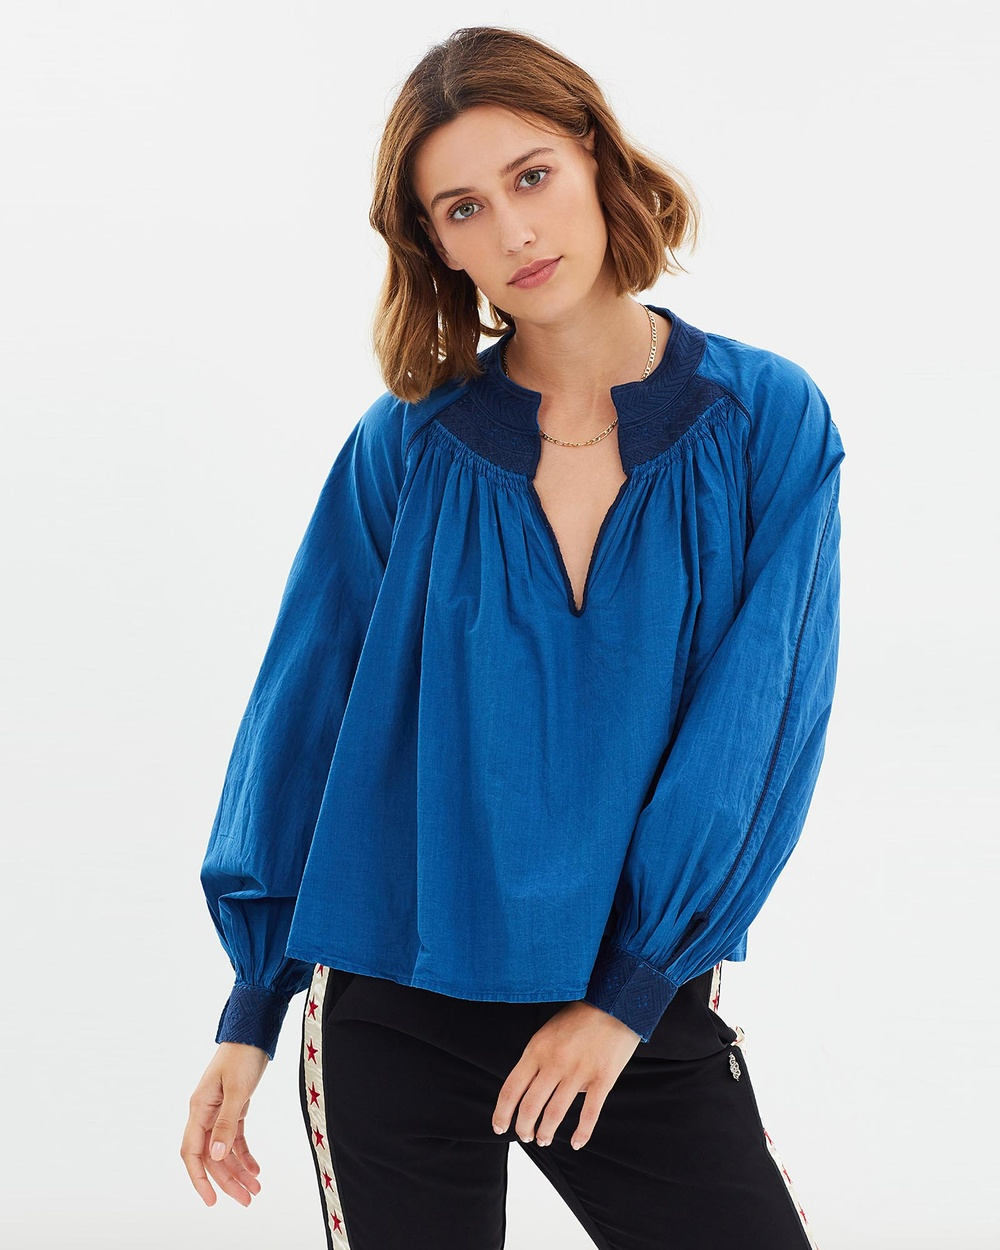 Maison Scotch Pleated Top Tops Indigo Pleated Top